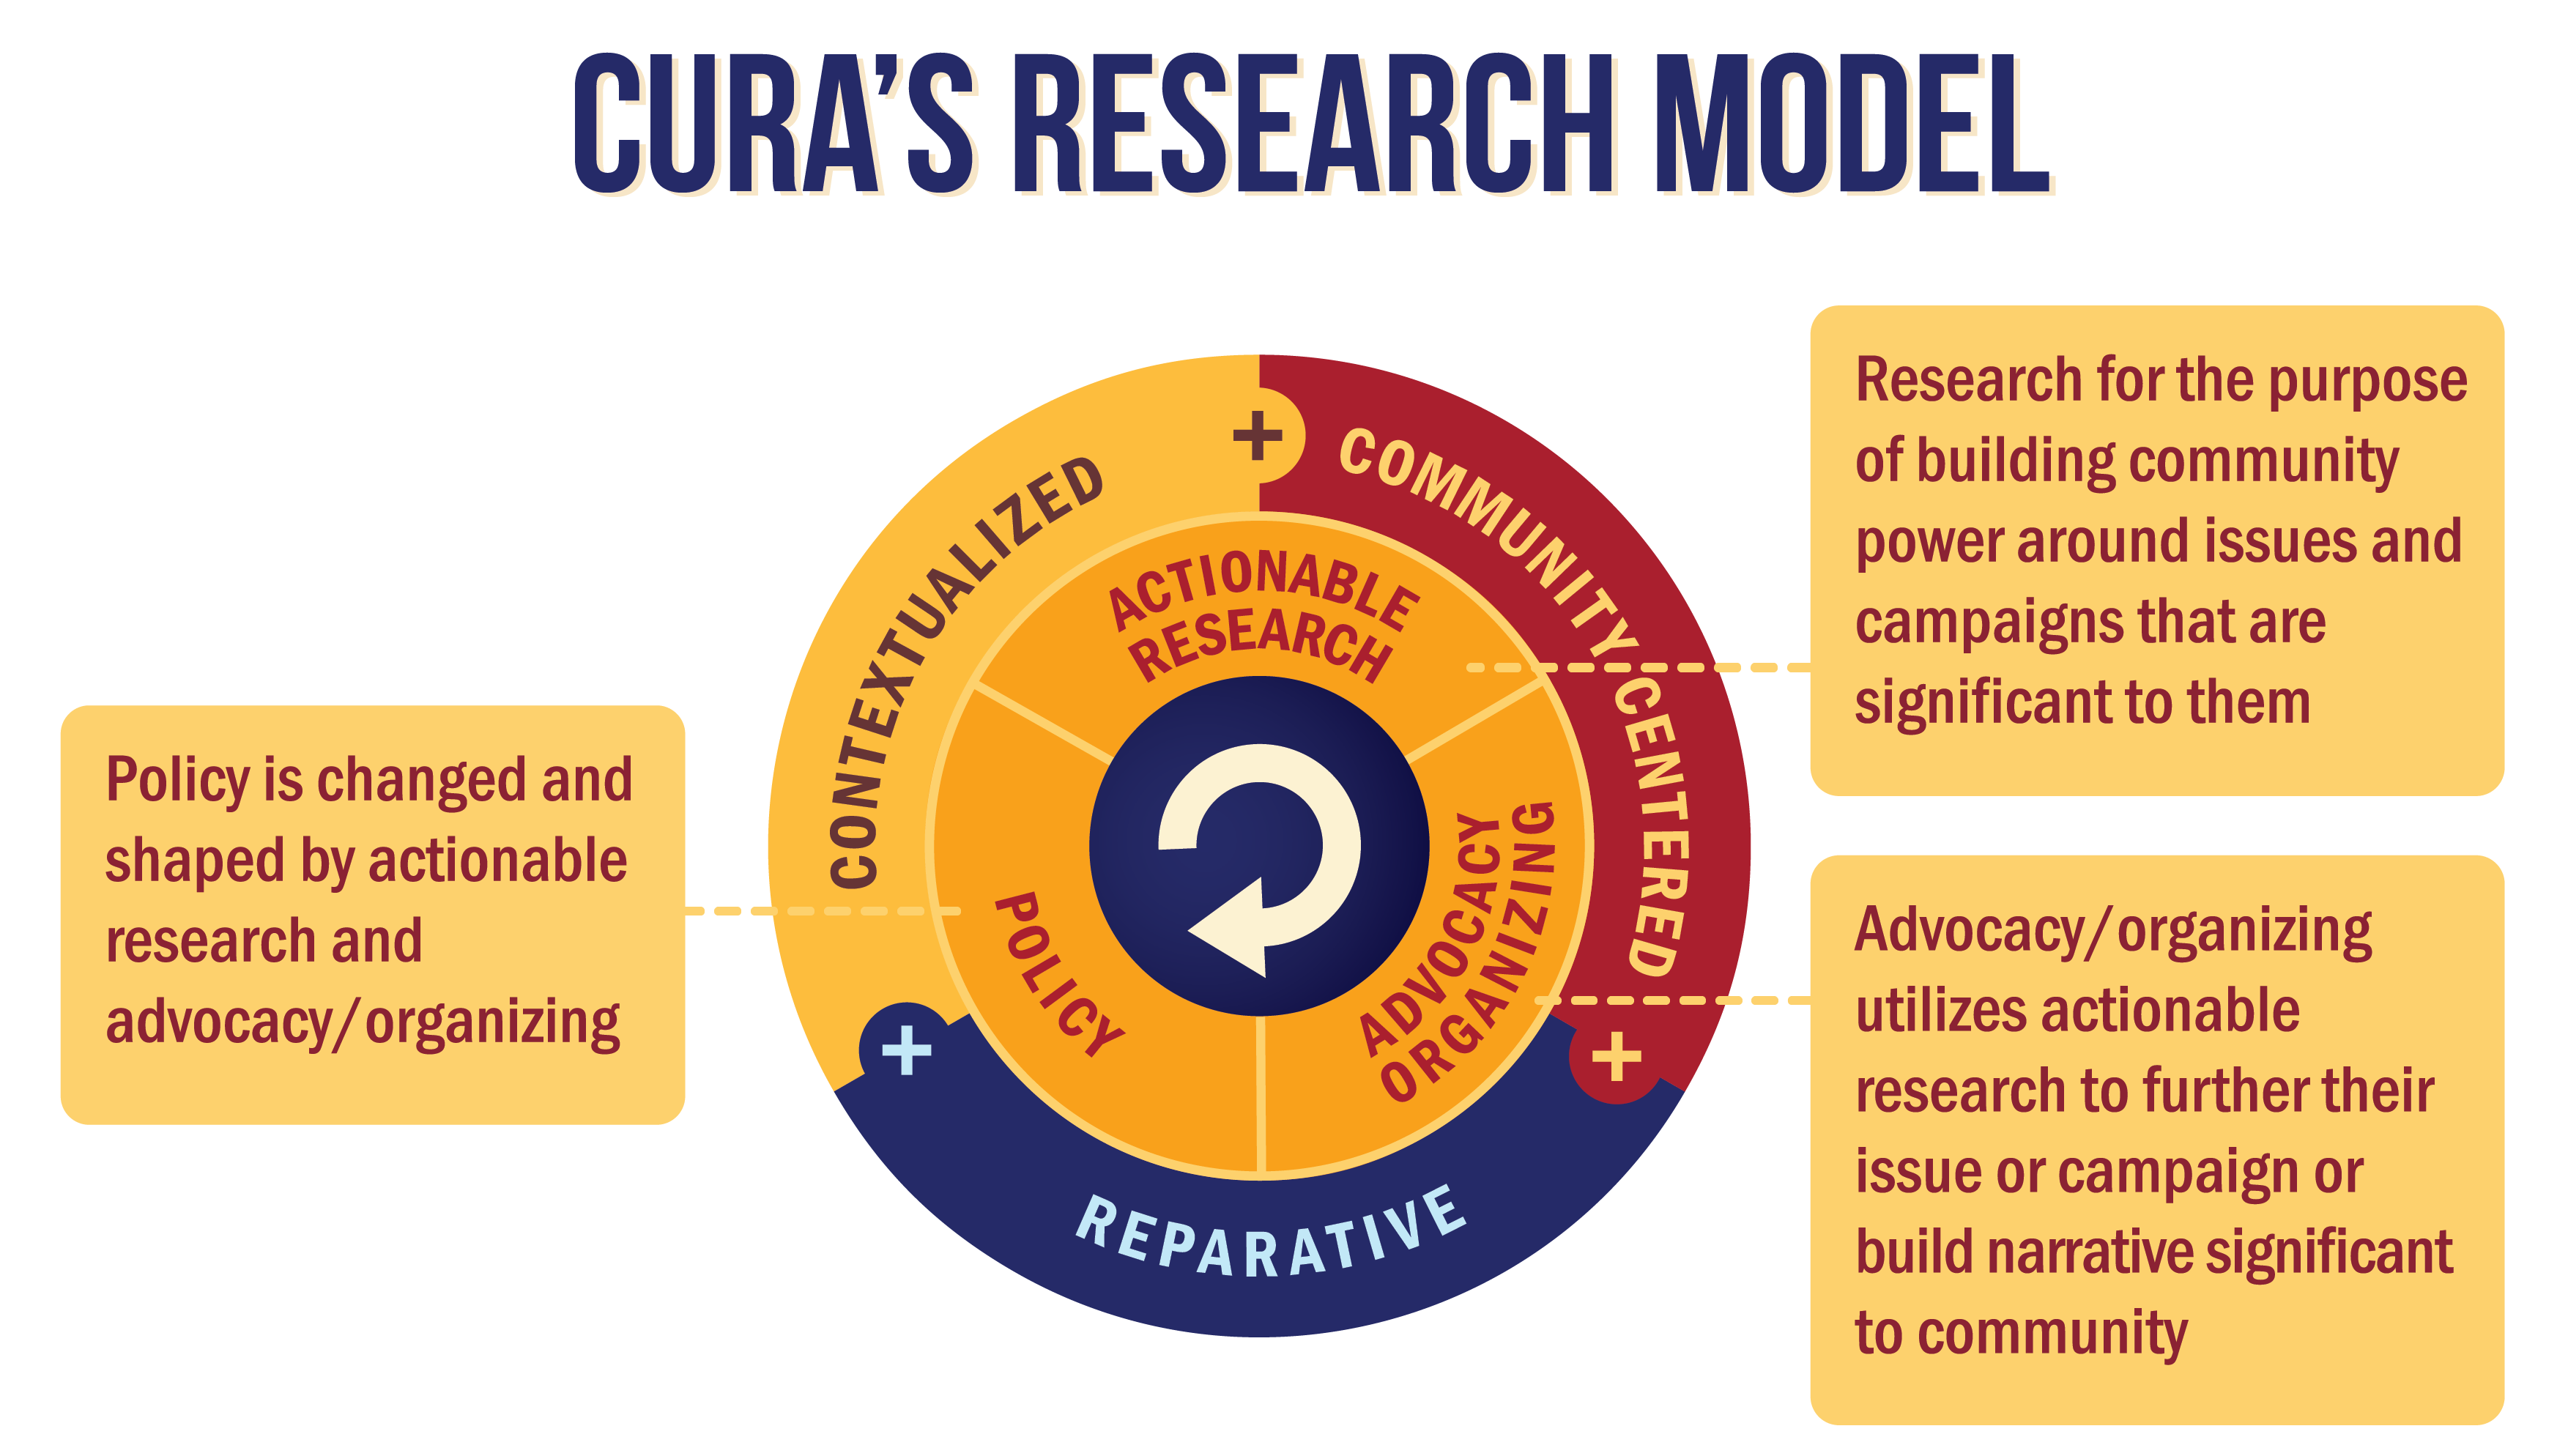 CURA's Research Model